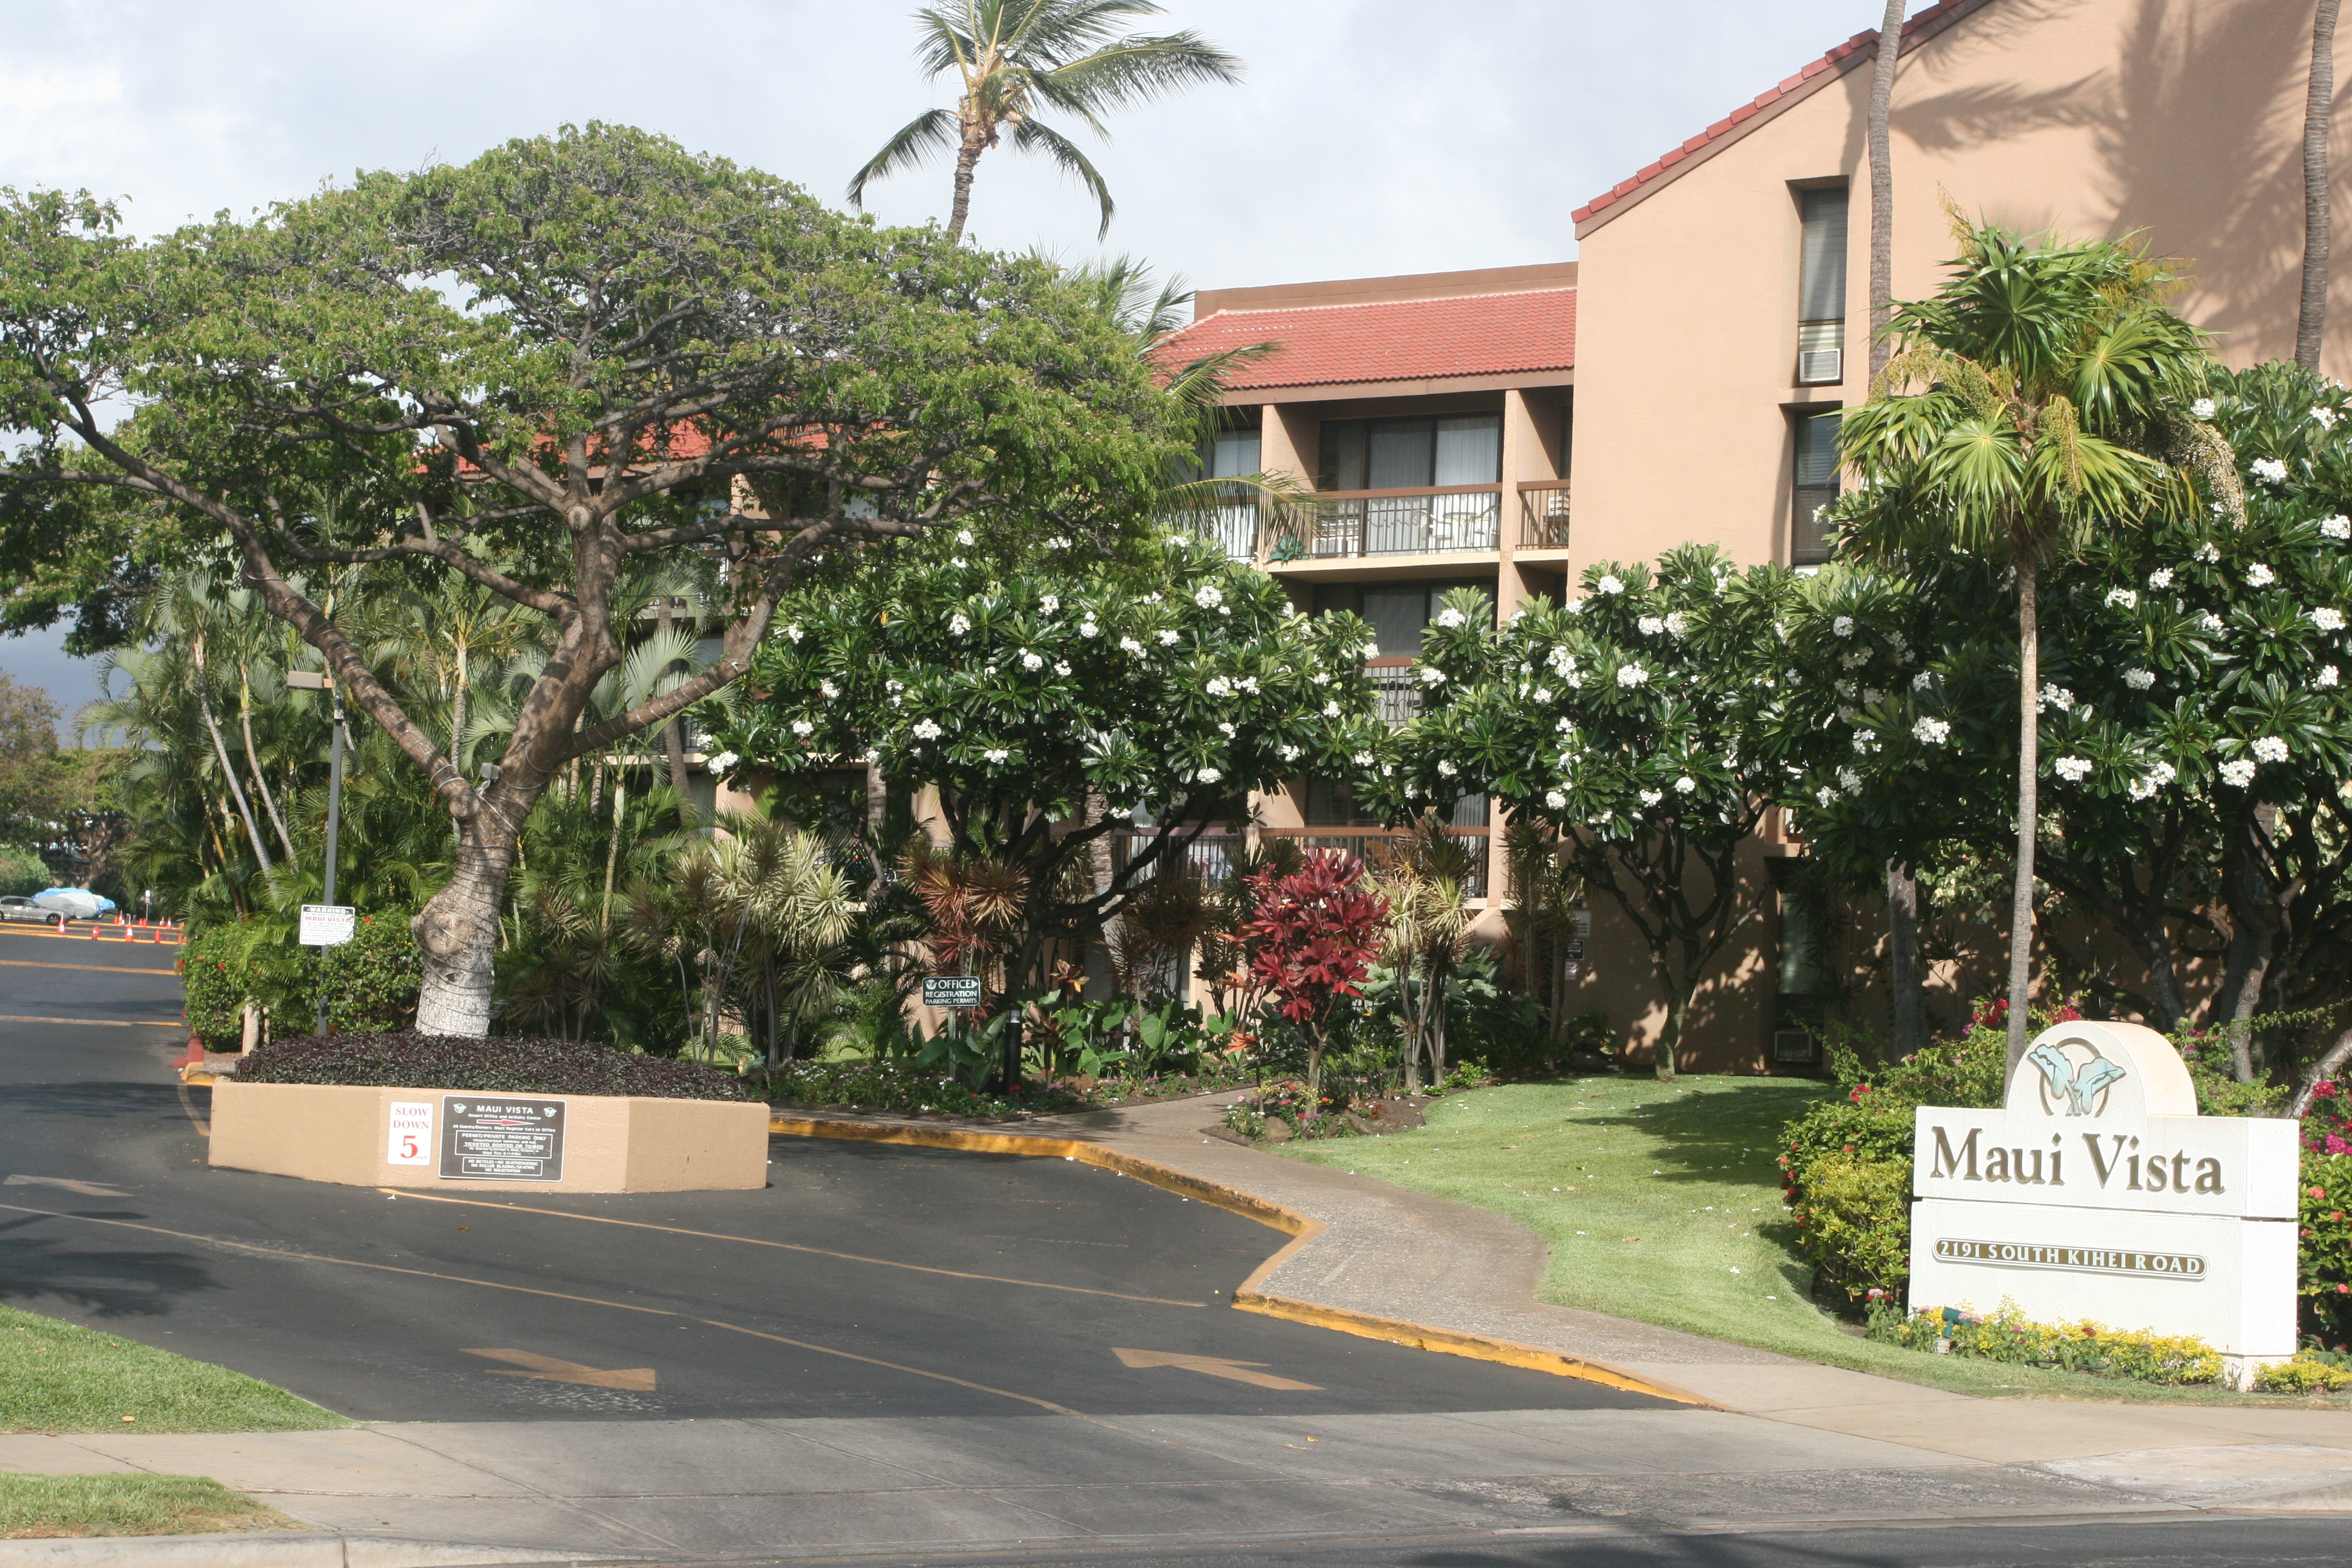 Our Condo Welcome To Maui